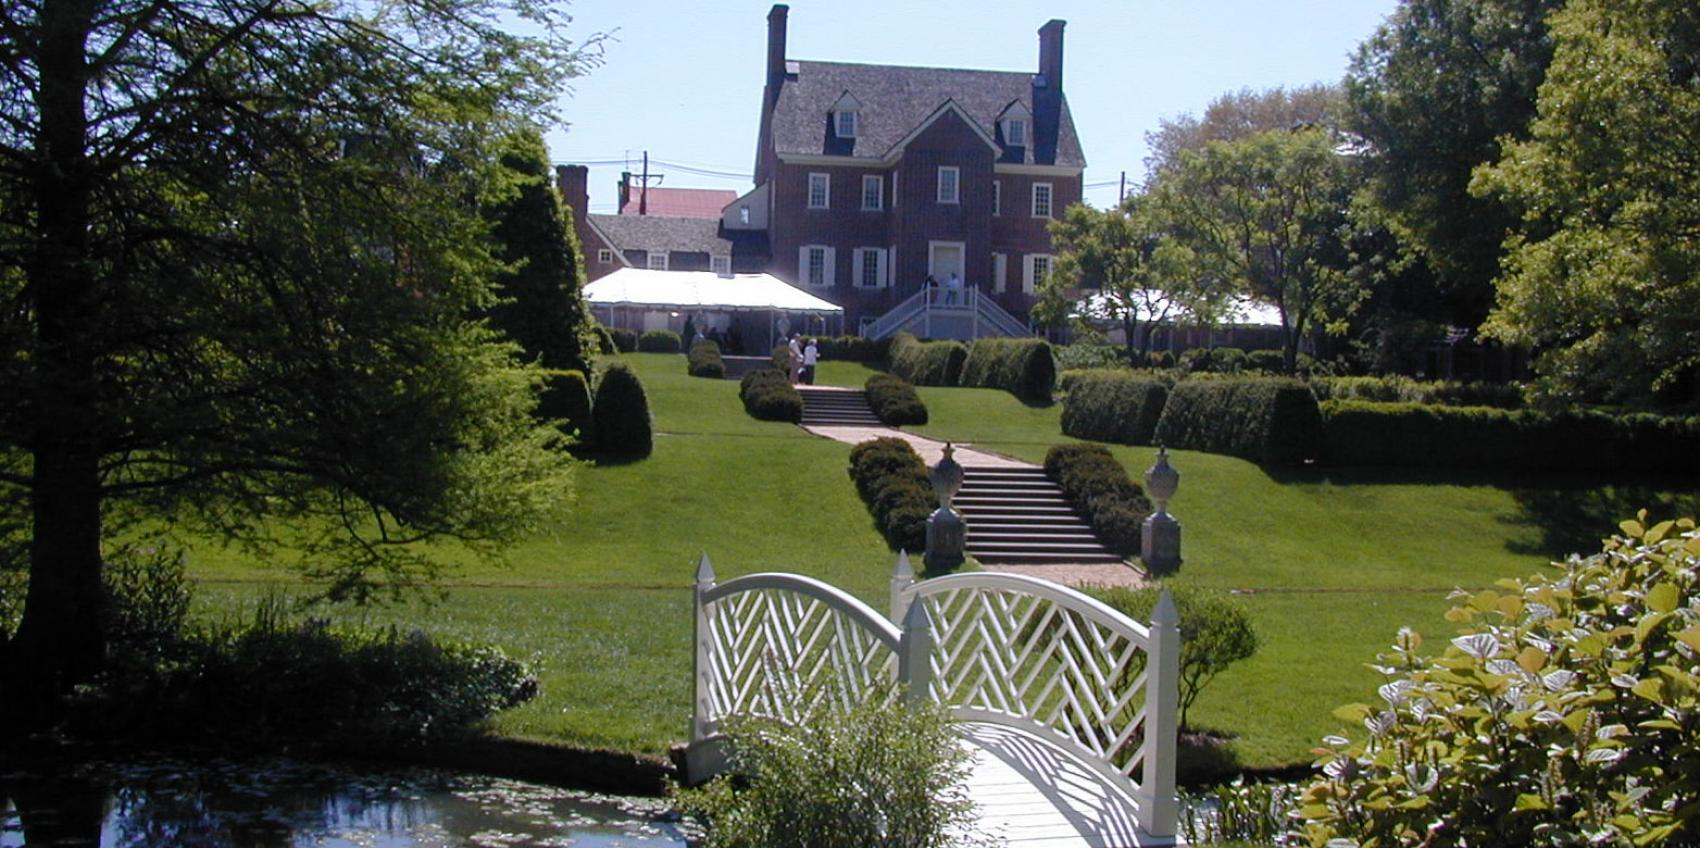 The William Paca Garden Is A Division Of Historic Annapolis Inc. The Garden  Is A 2 Acre Reconstruction Of A Garden Established In 1765 By One Of  Marylandu0027s ...